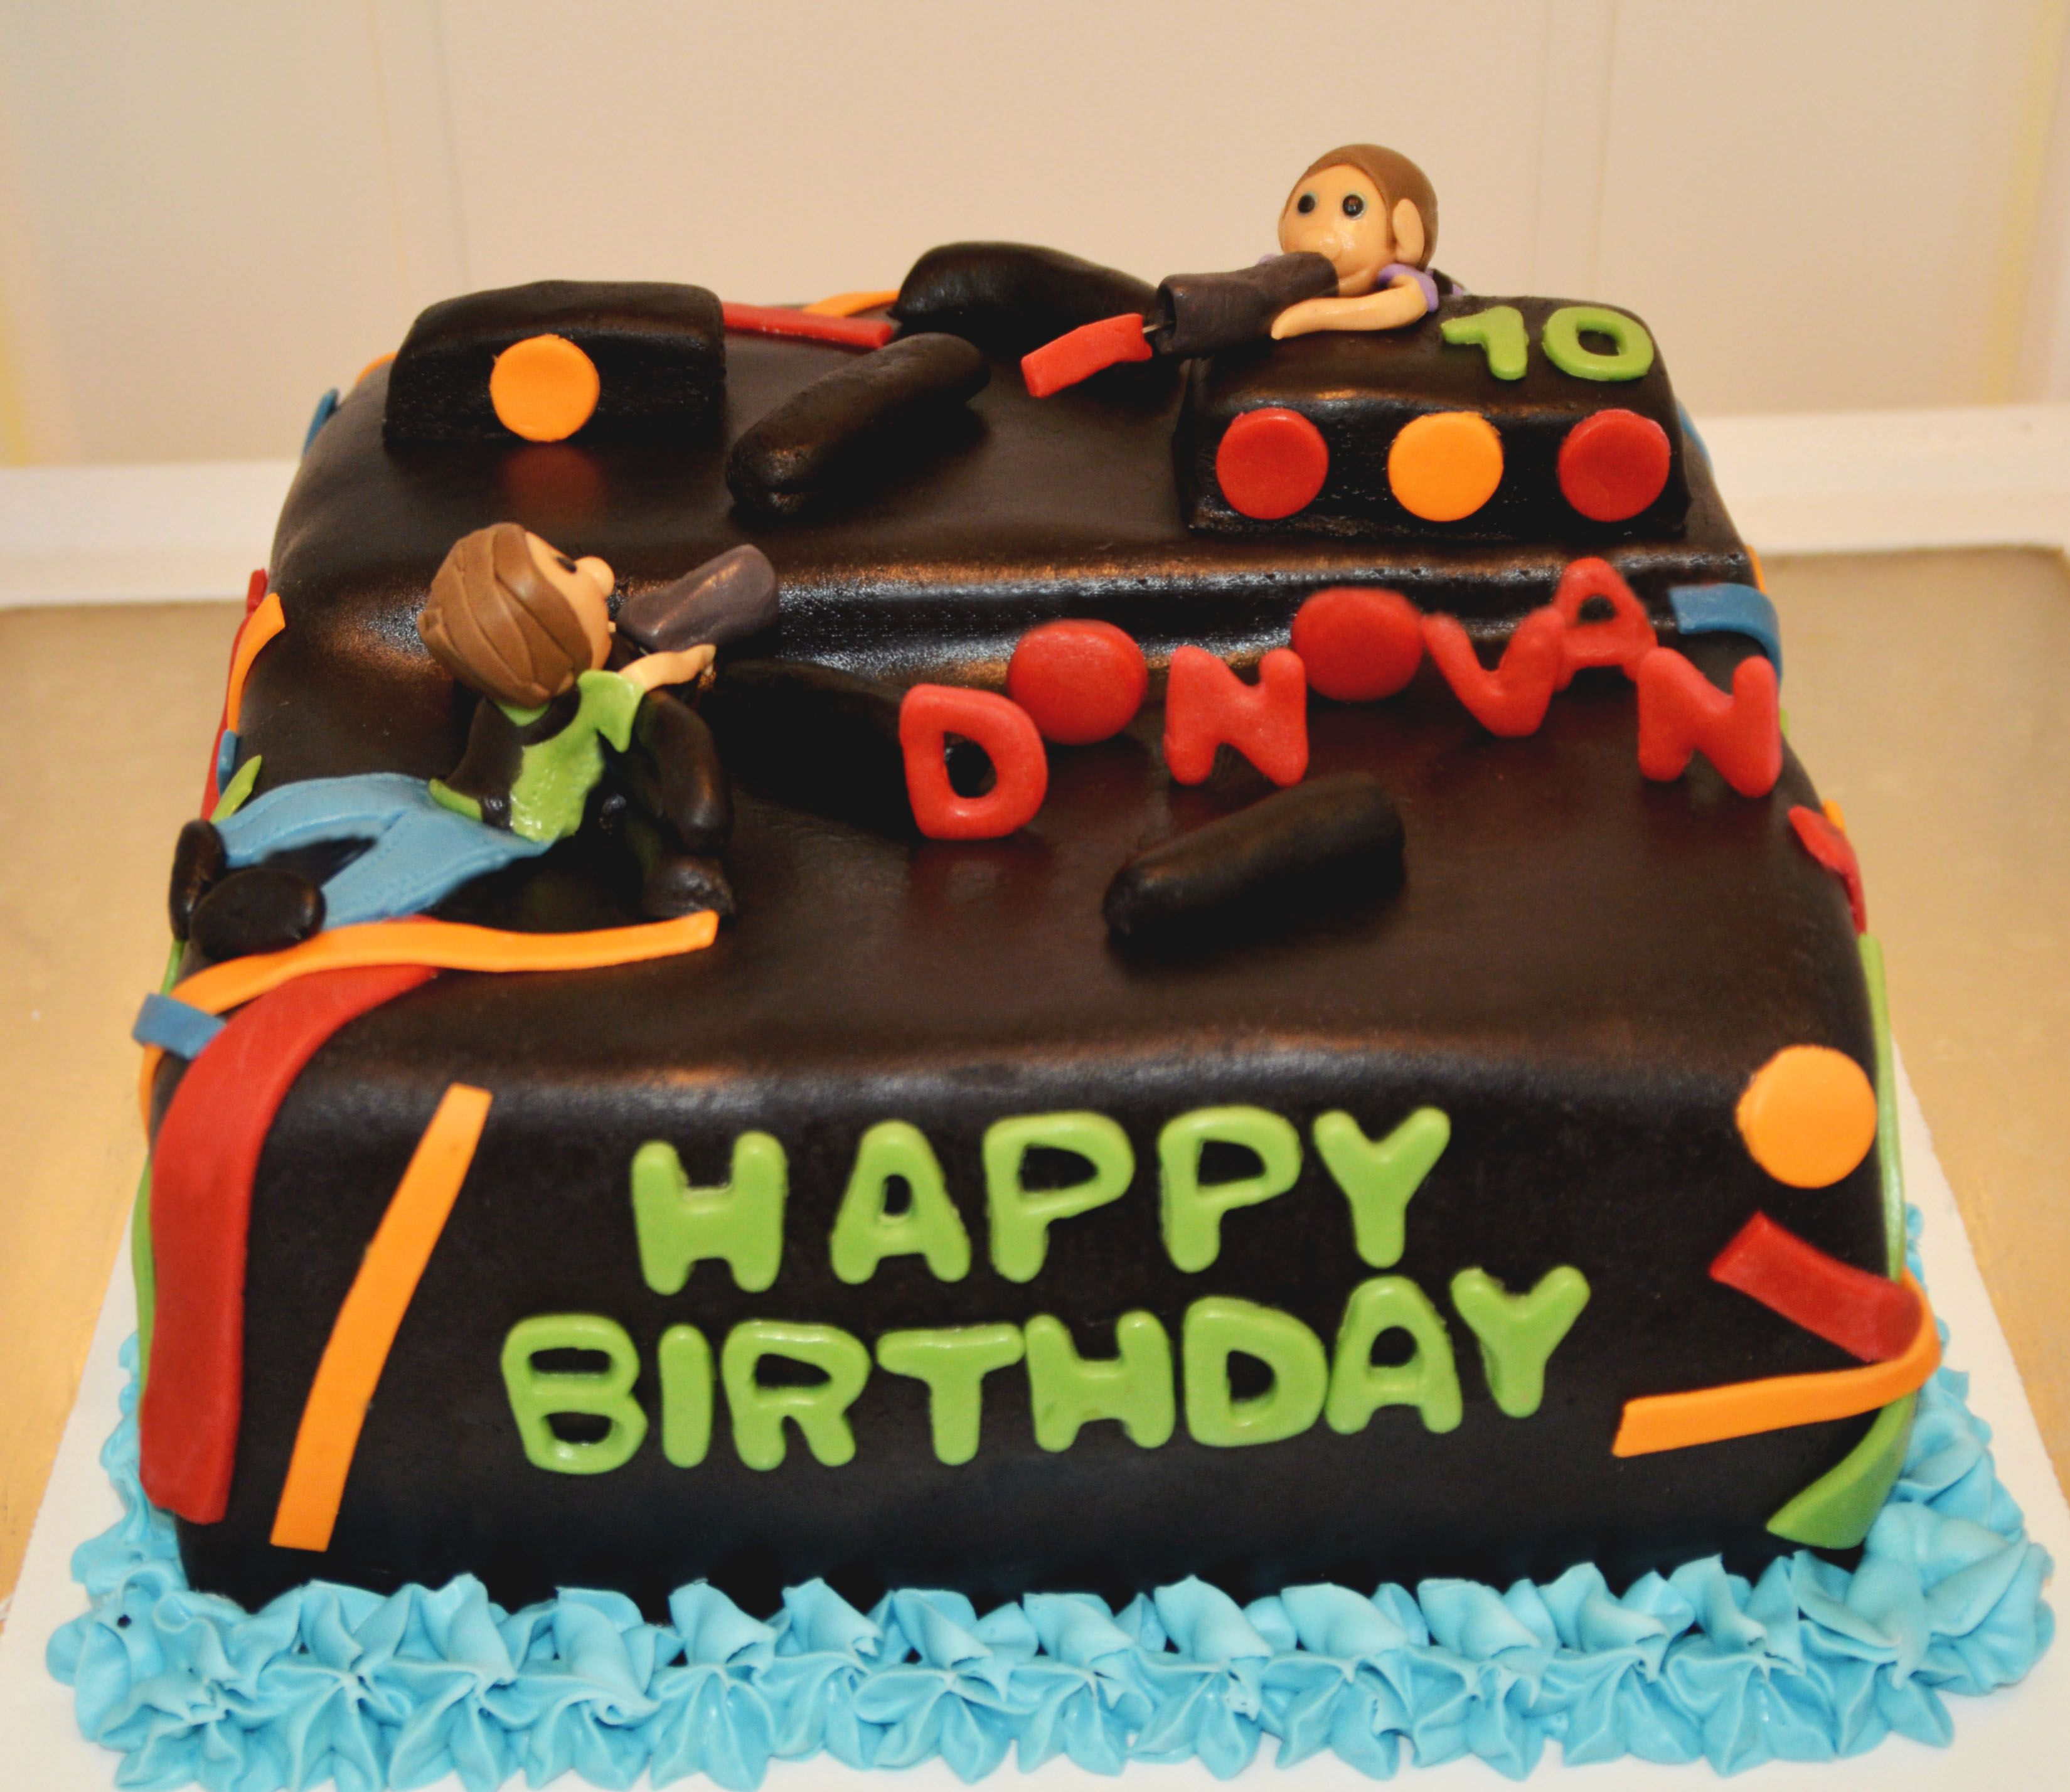 Kids laser tag cake ideas for parties Pinterest Laser tag